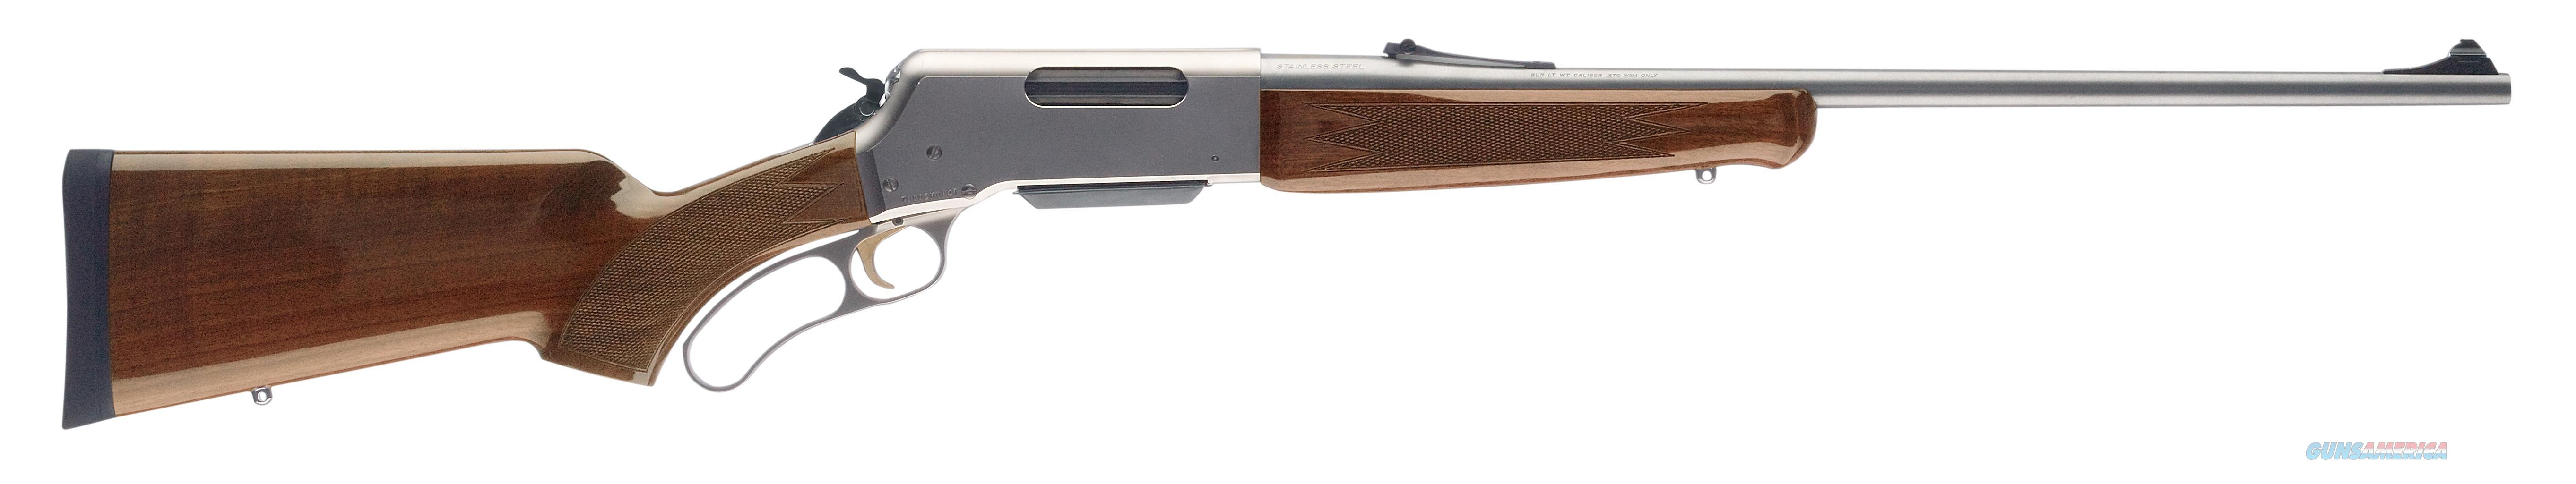 "Browning 034018126 Blr Lightweight Stainless With Pistol Grip Lever 30-06 Springfield 22"" 4+1 Walnut Stock Stainless Steel 034018126  Guns > Rifles > B Misc Rifles"